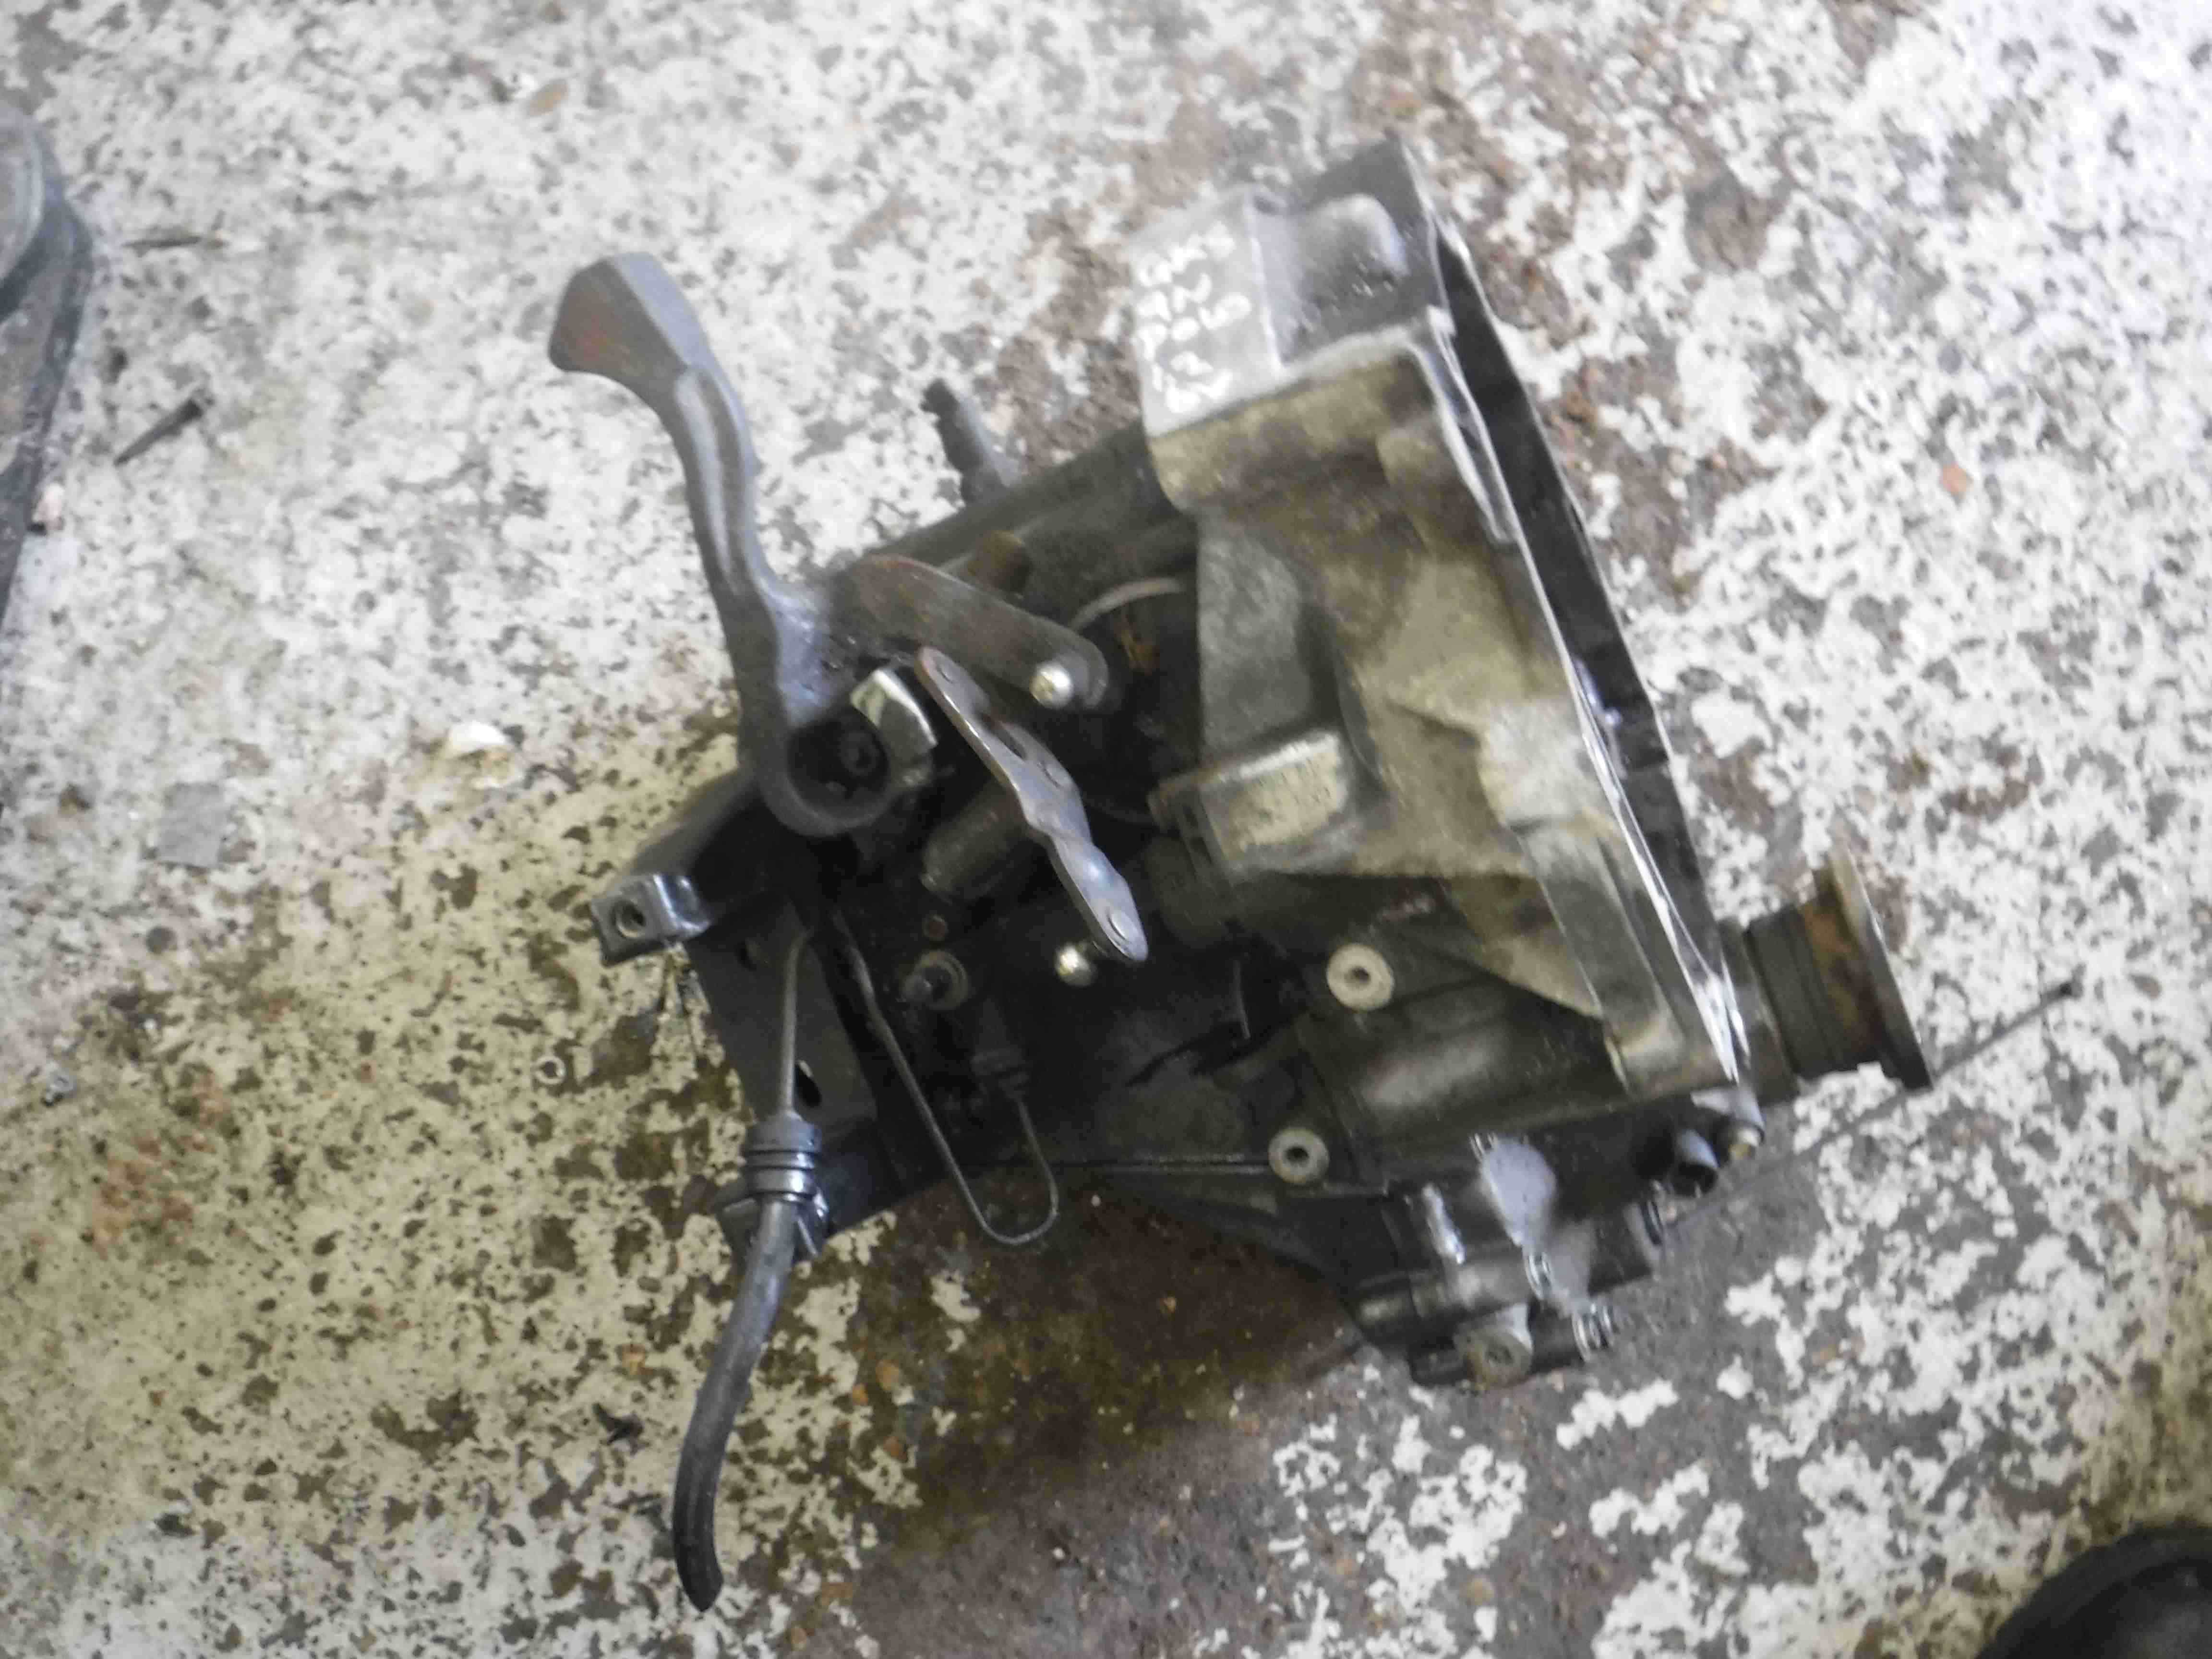 Volkswagen Polo 2003-2006 9N 1.2 6v 5 Speed Manual Gearbox GKS